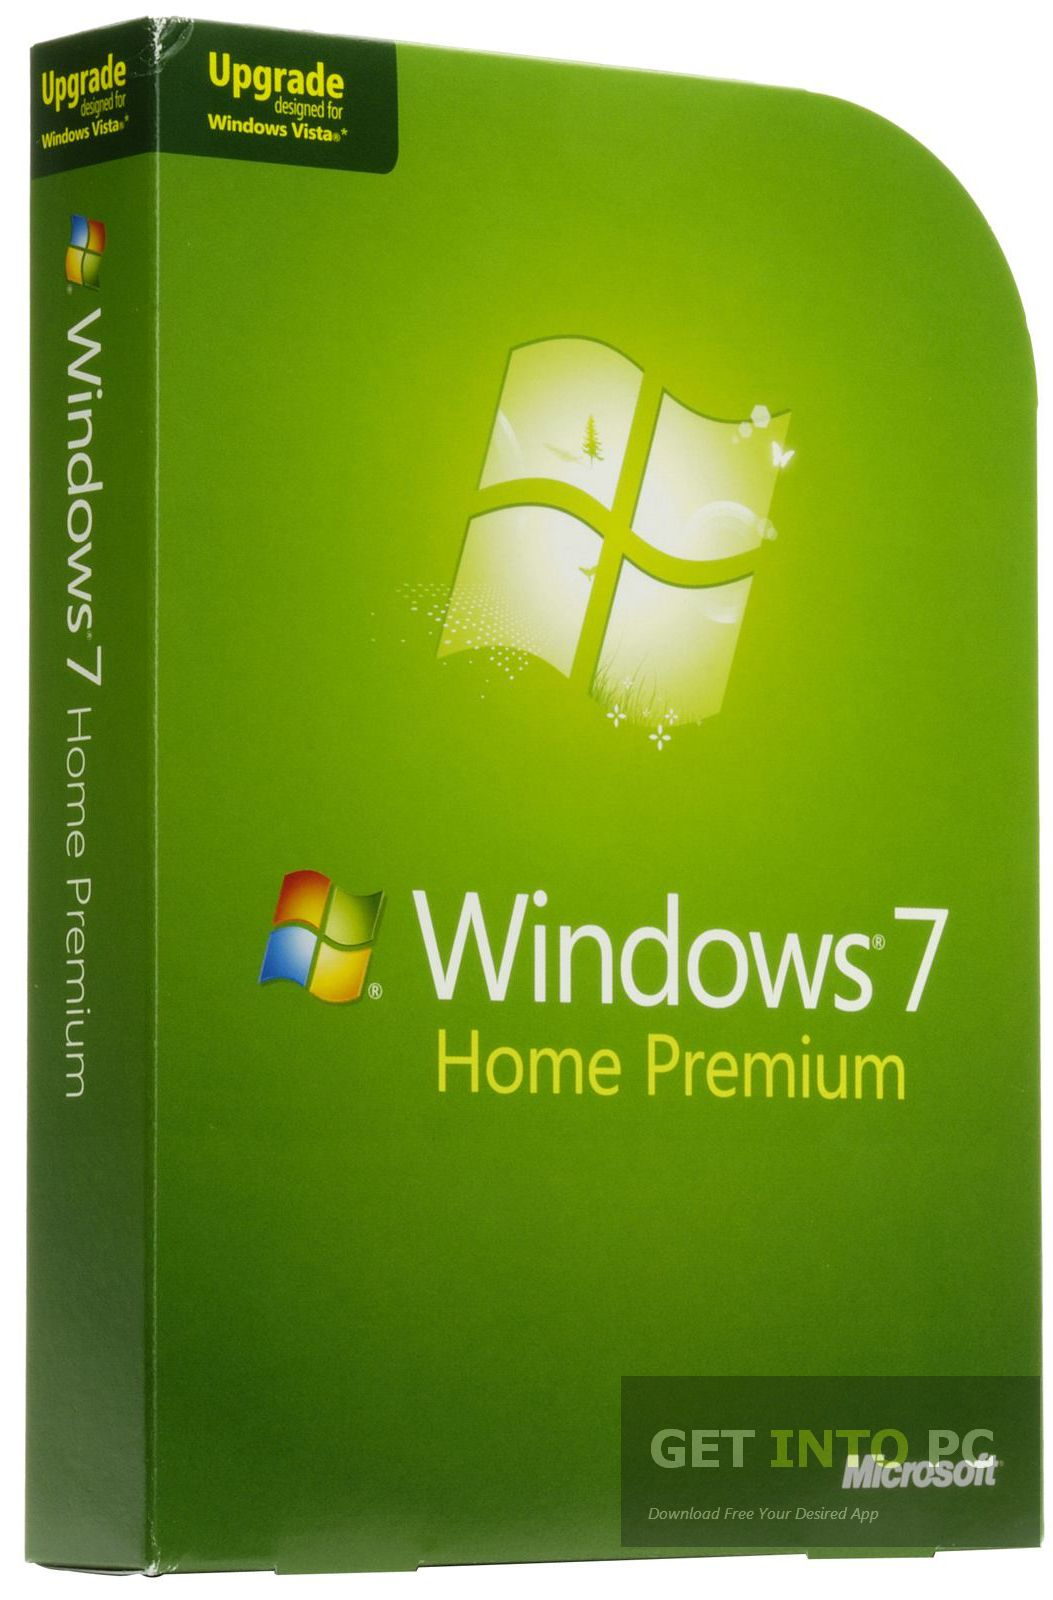 Dell windows 7 professional 64 bit iso download softrumeter.